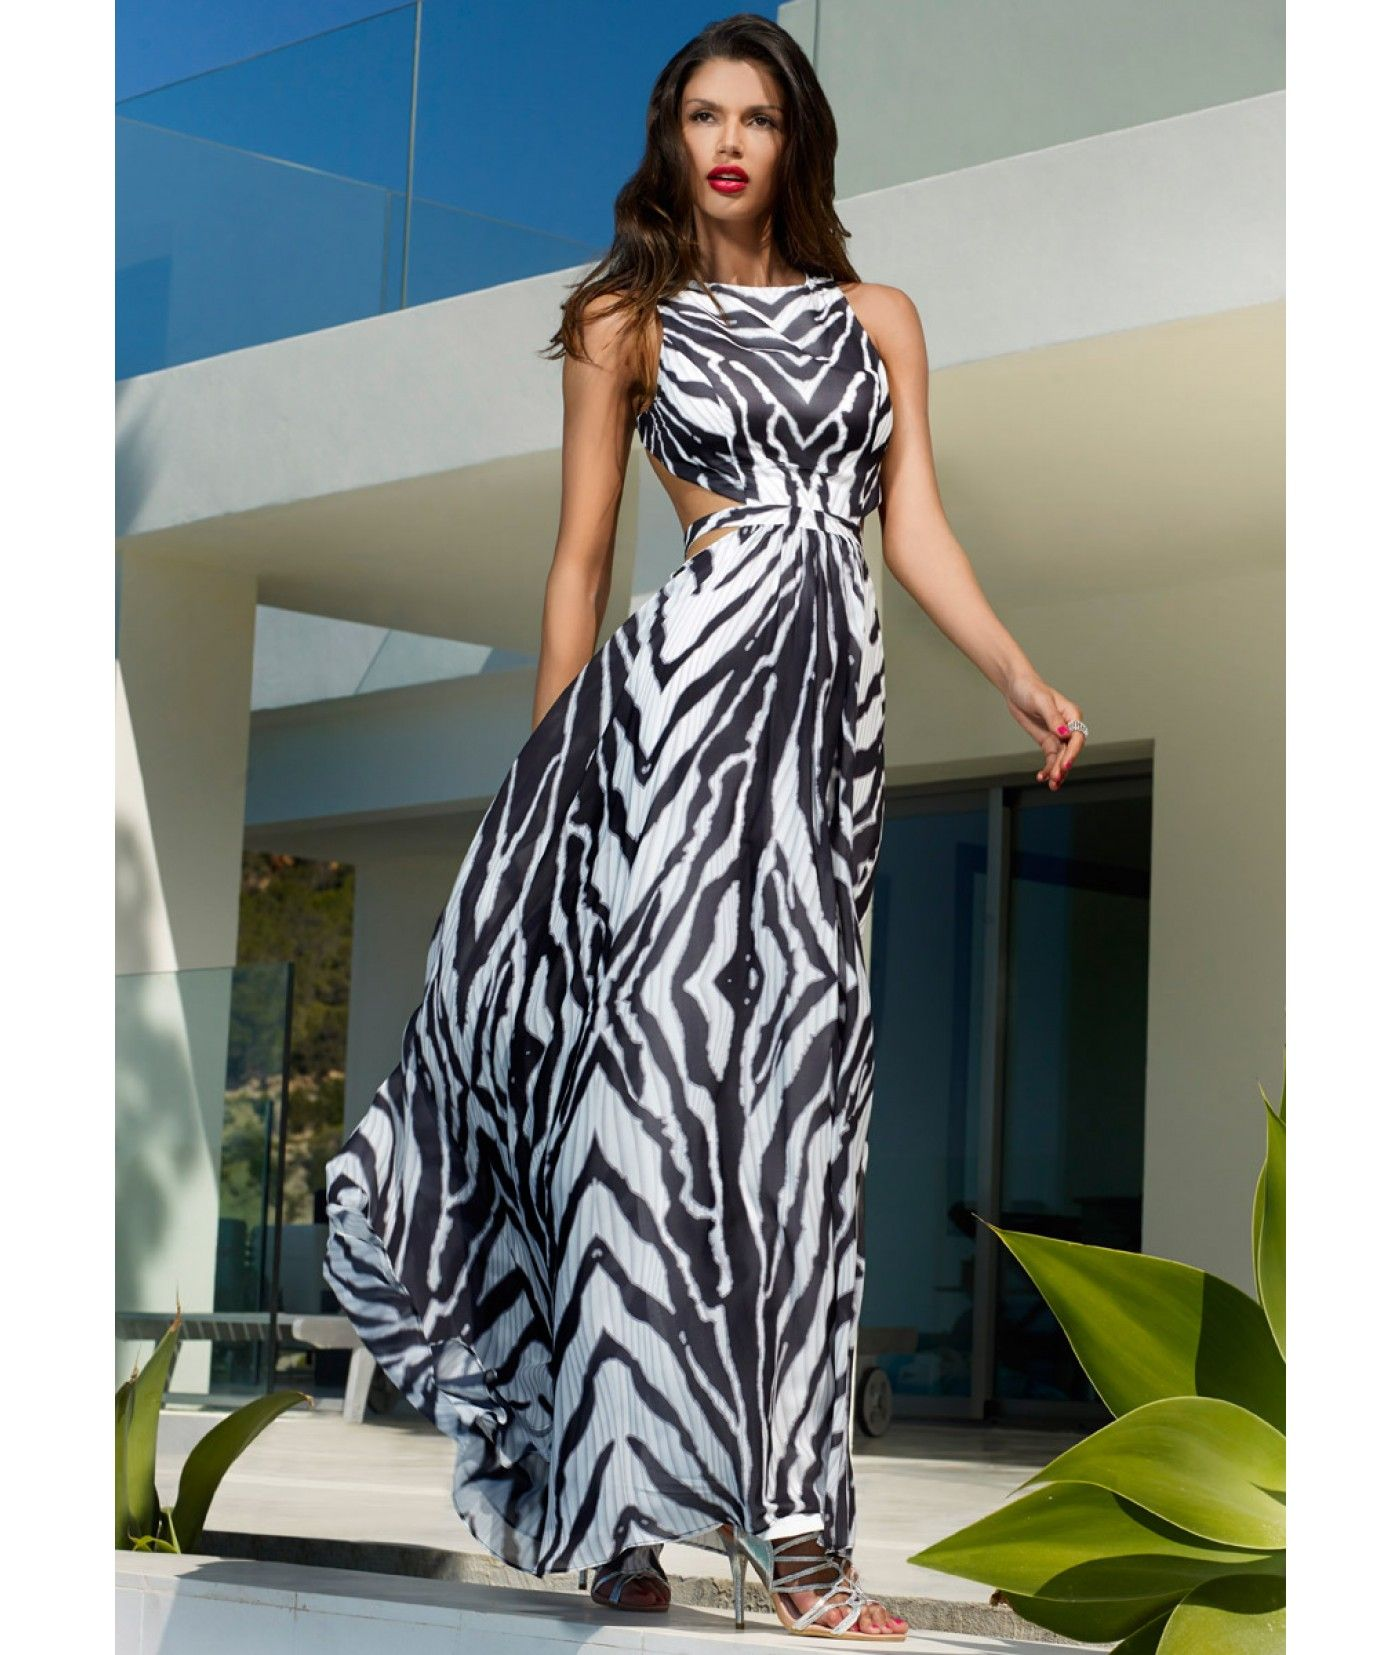 AMETHYST - Zebra print maxi dress with side and back cut out detail ...